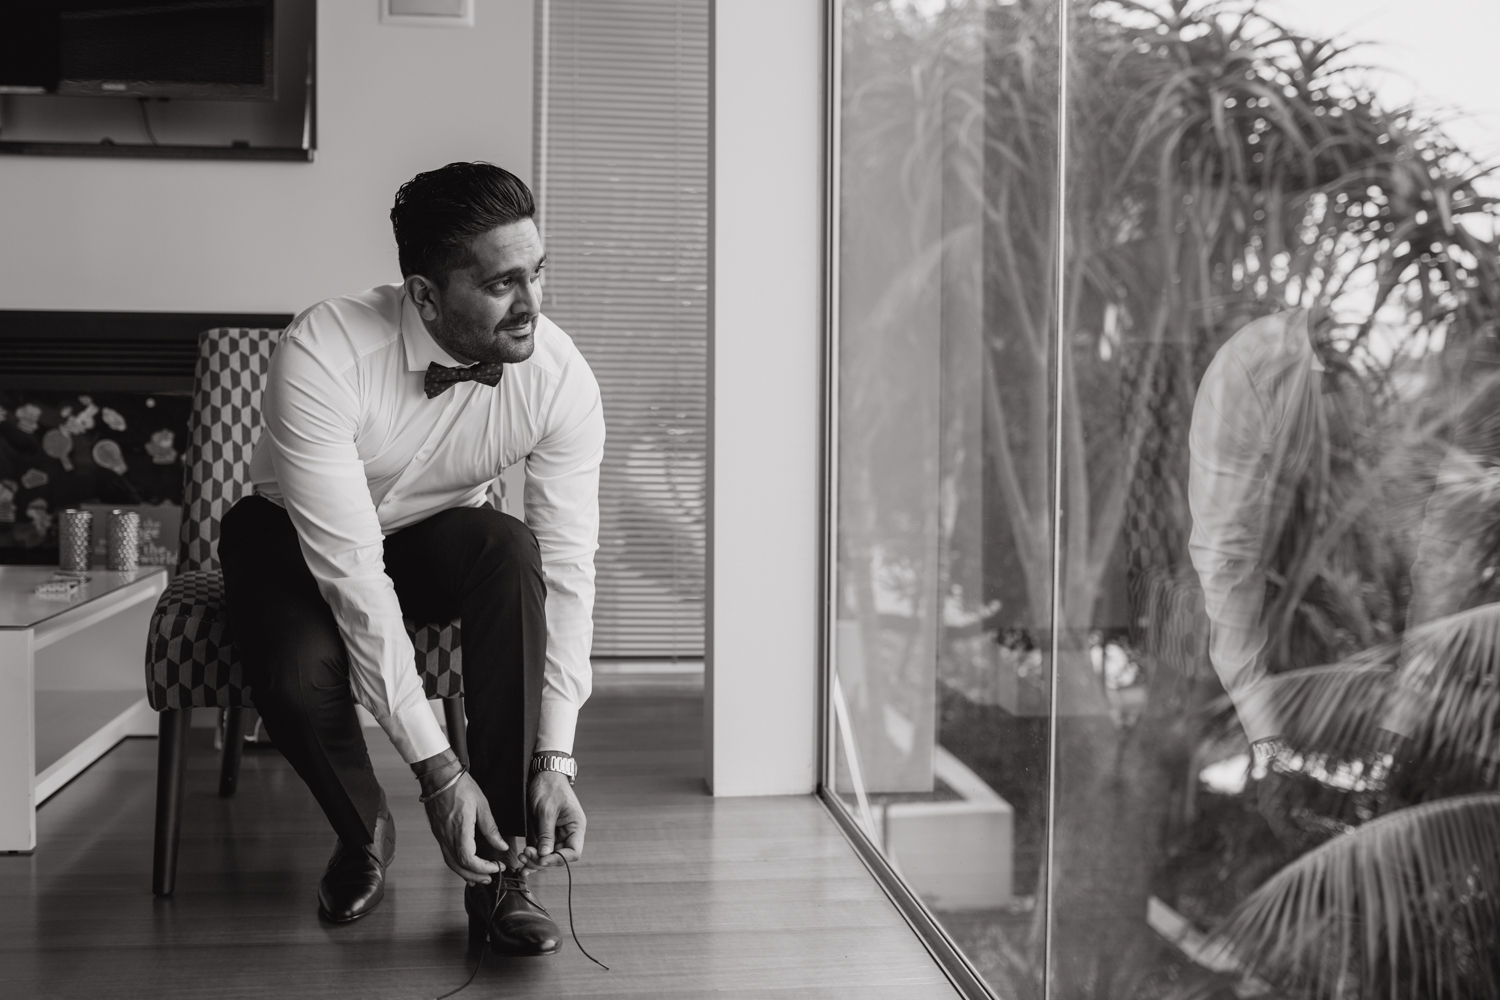 Groom getting ready for his wedding. This image was taken by Mala Photography, an Auckland based wedding photographer. The wedding was at Markovina Vineyard Estate In Kumeu, Auckland.